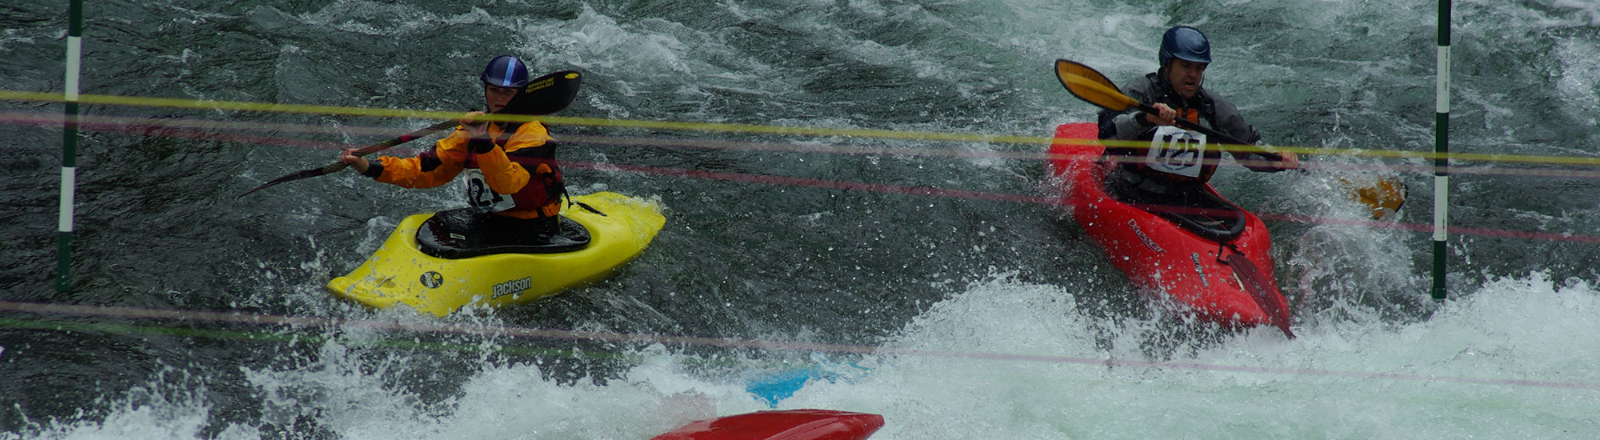 5 Kayakers in yellow and red hardshell kayaks paddling through gate at Upper Clackamas Whitewater Festival in Mt. Hood Territory